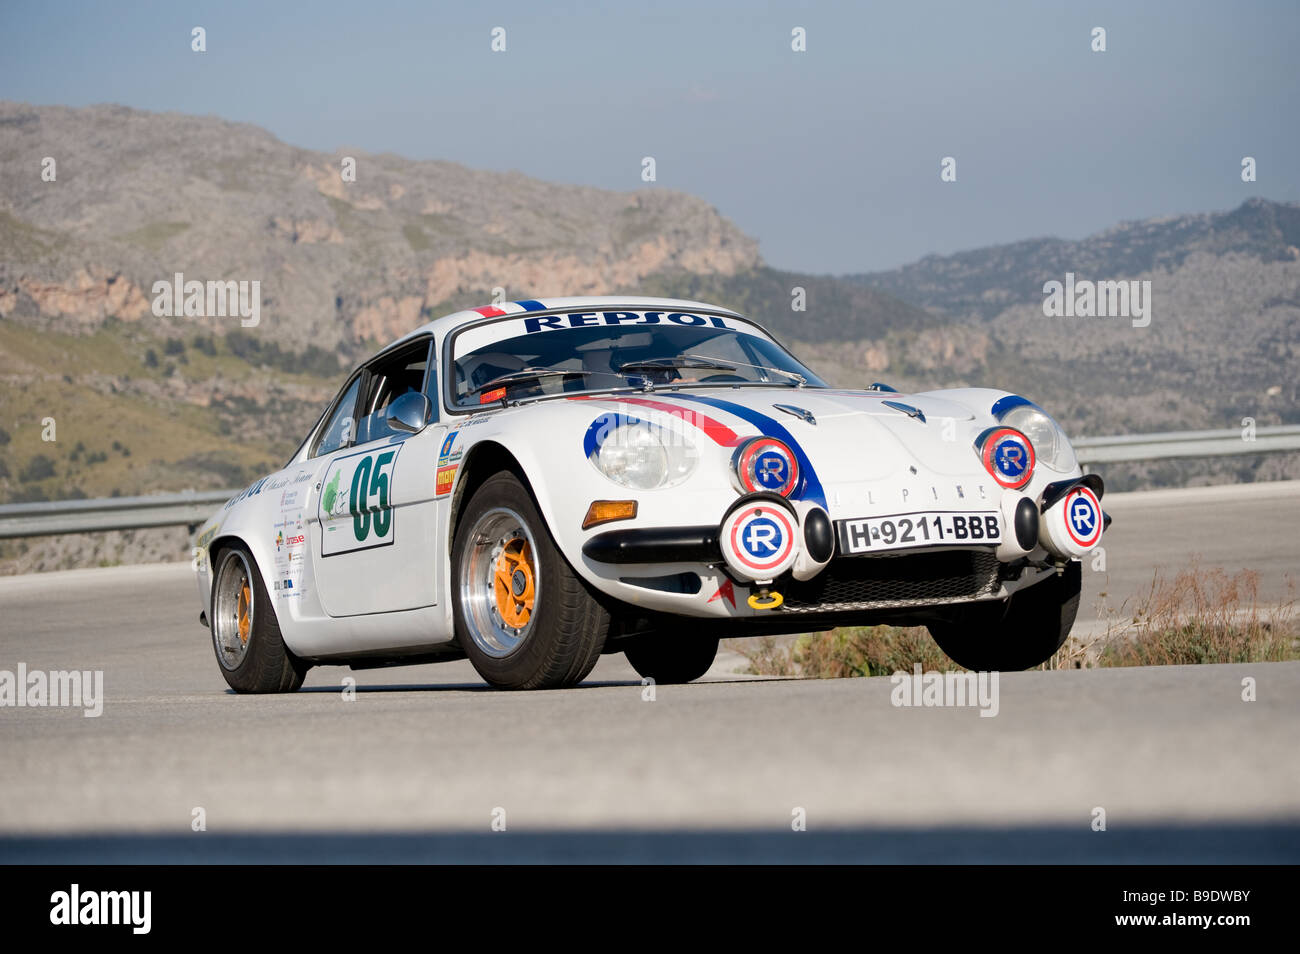 1969 Renault Alpine A 110 Racing in the Classic car rally Mallorca Stock Photo